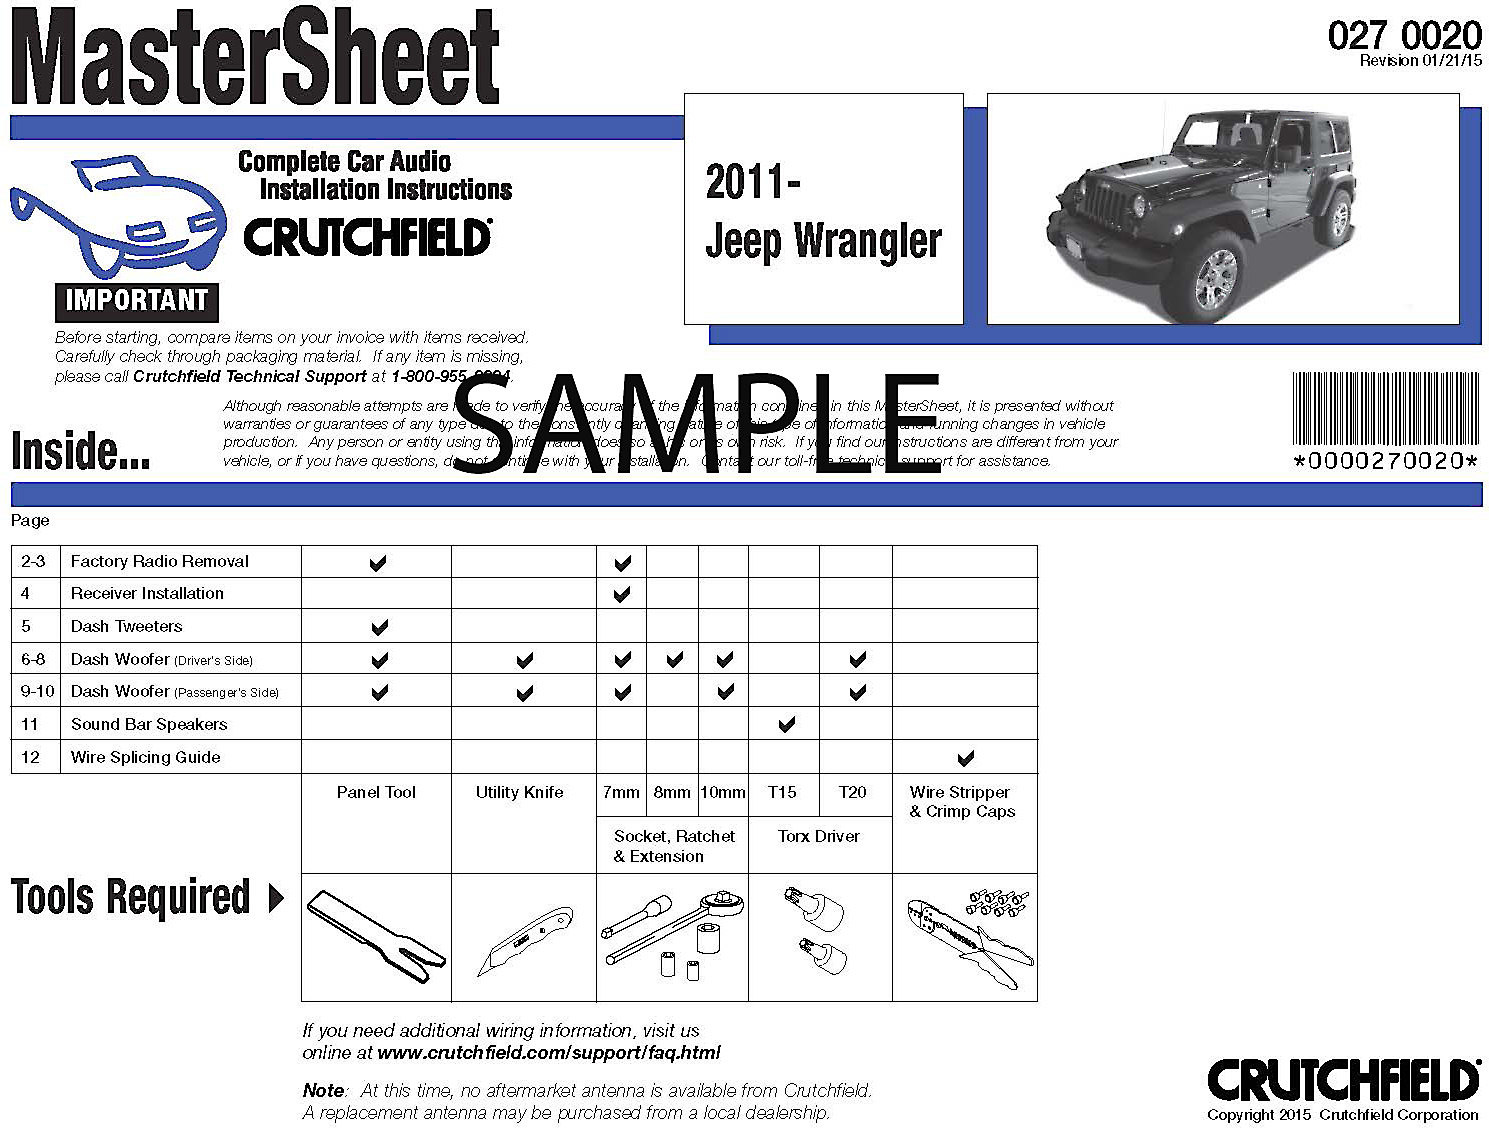 Crutchfield Vehicle-specific Instructions How to remove the